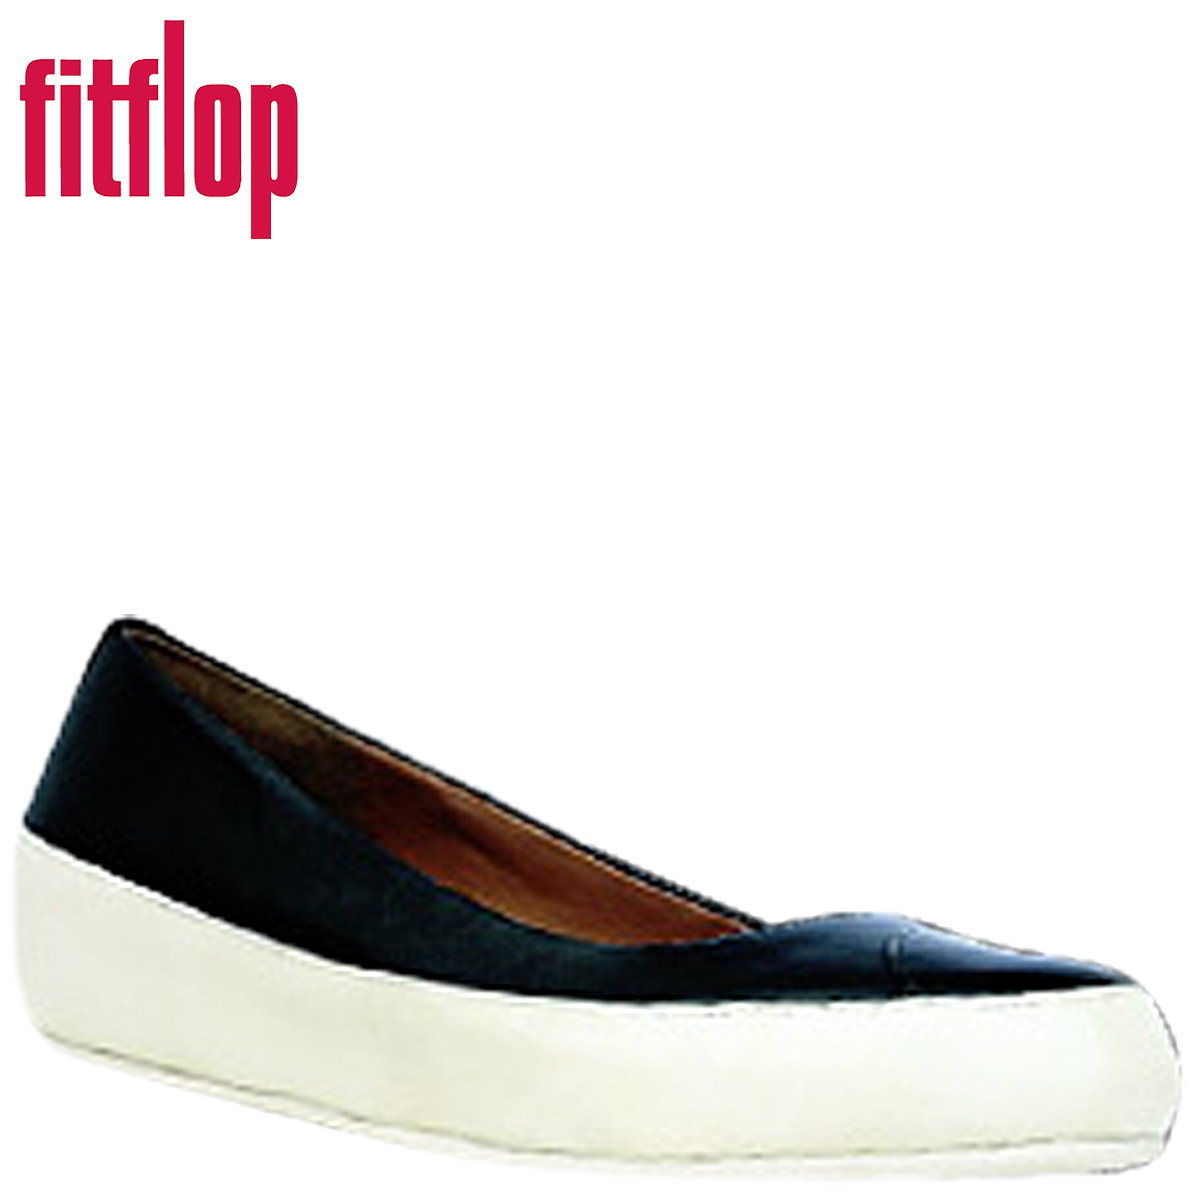 3f6089531 Fit flops FitFlop women s LEATHER DUE due pumps 3 colors leather shoes 246   3   17 new in stock   regular